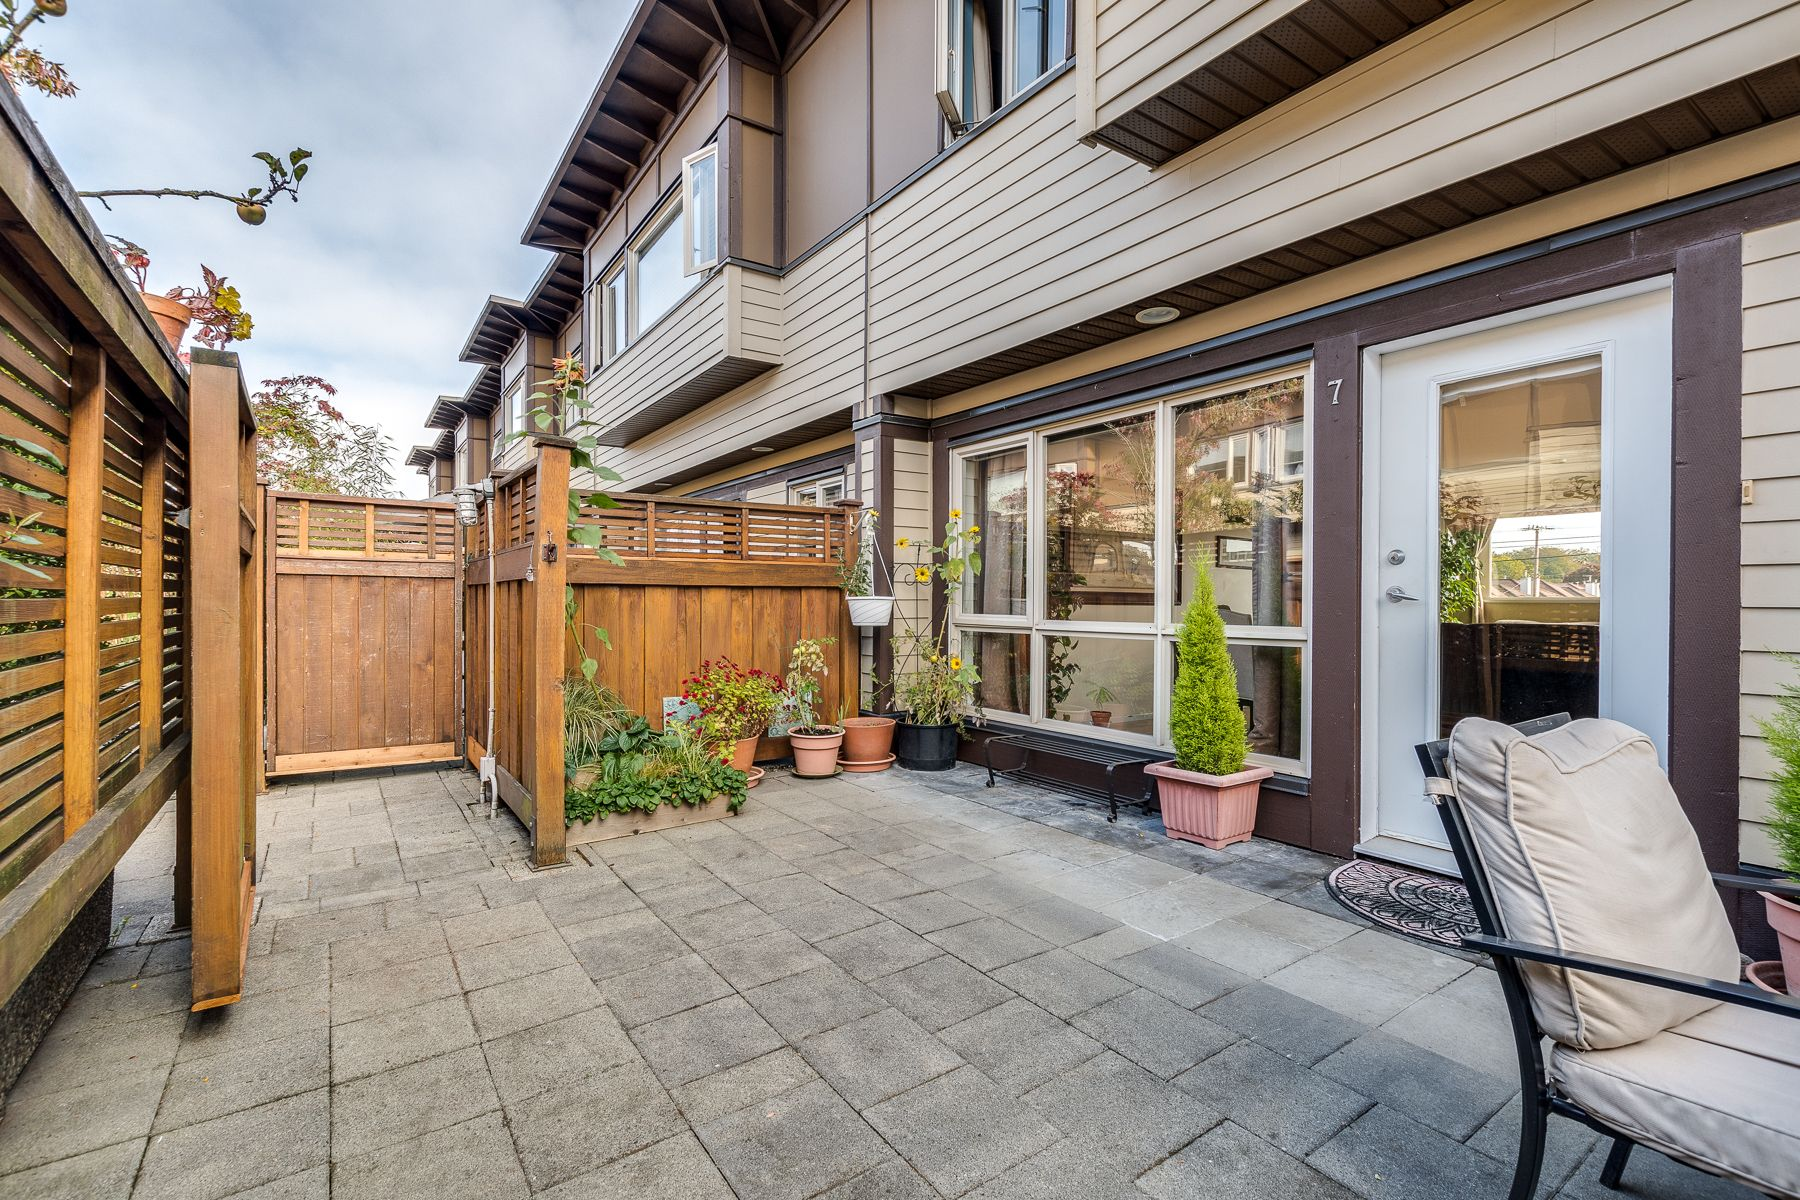 Photo 4: Photos: 7-2389 Charles St in Vancouver: Grandview Woodland Townhouse for sale (Vancouver East)